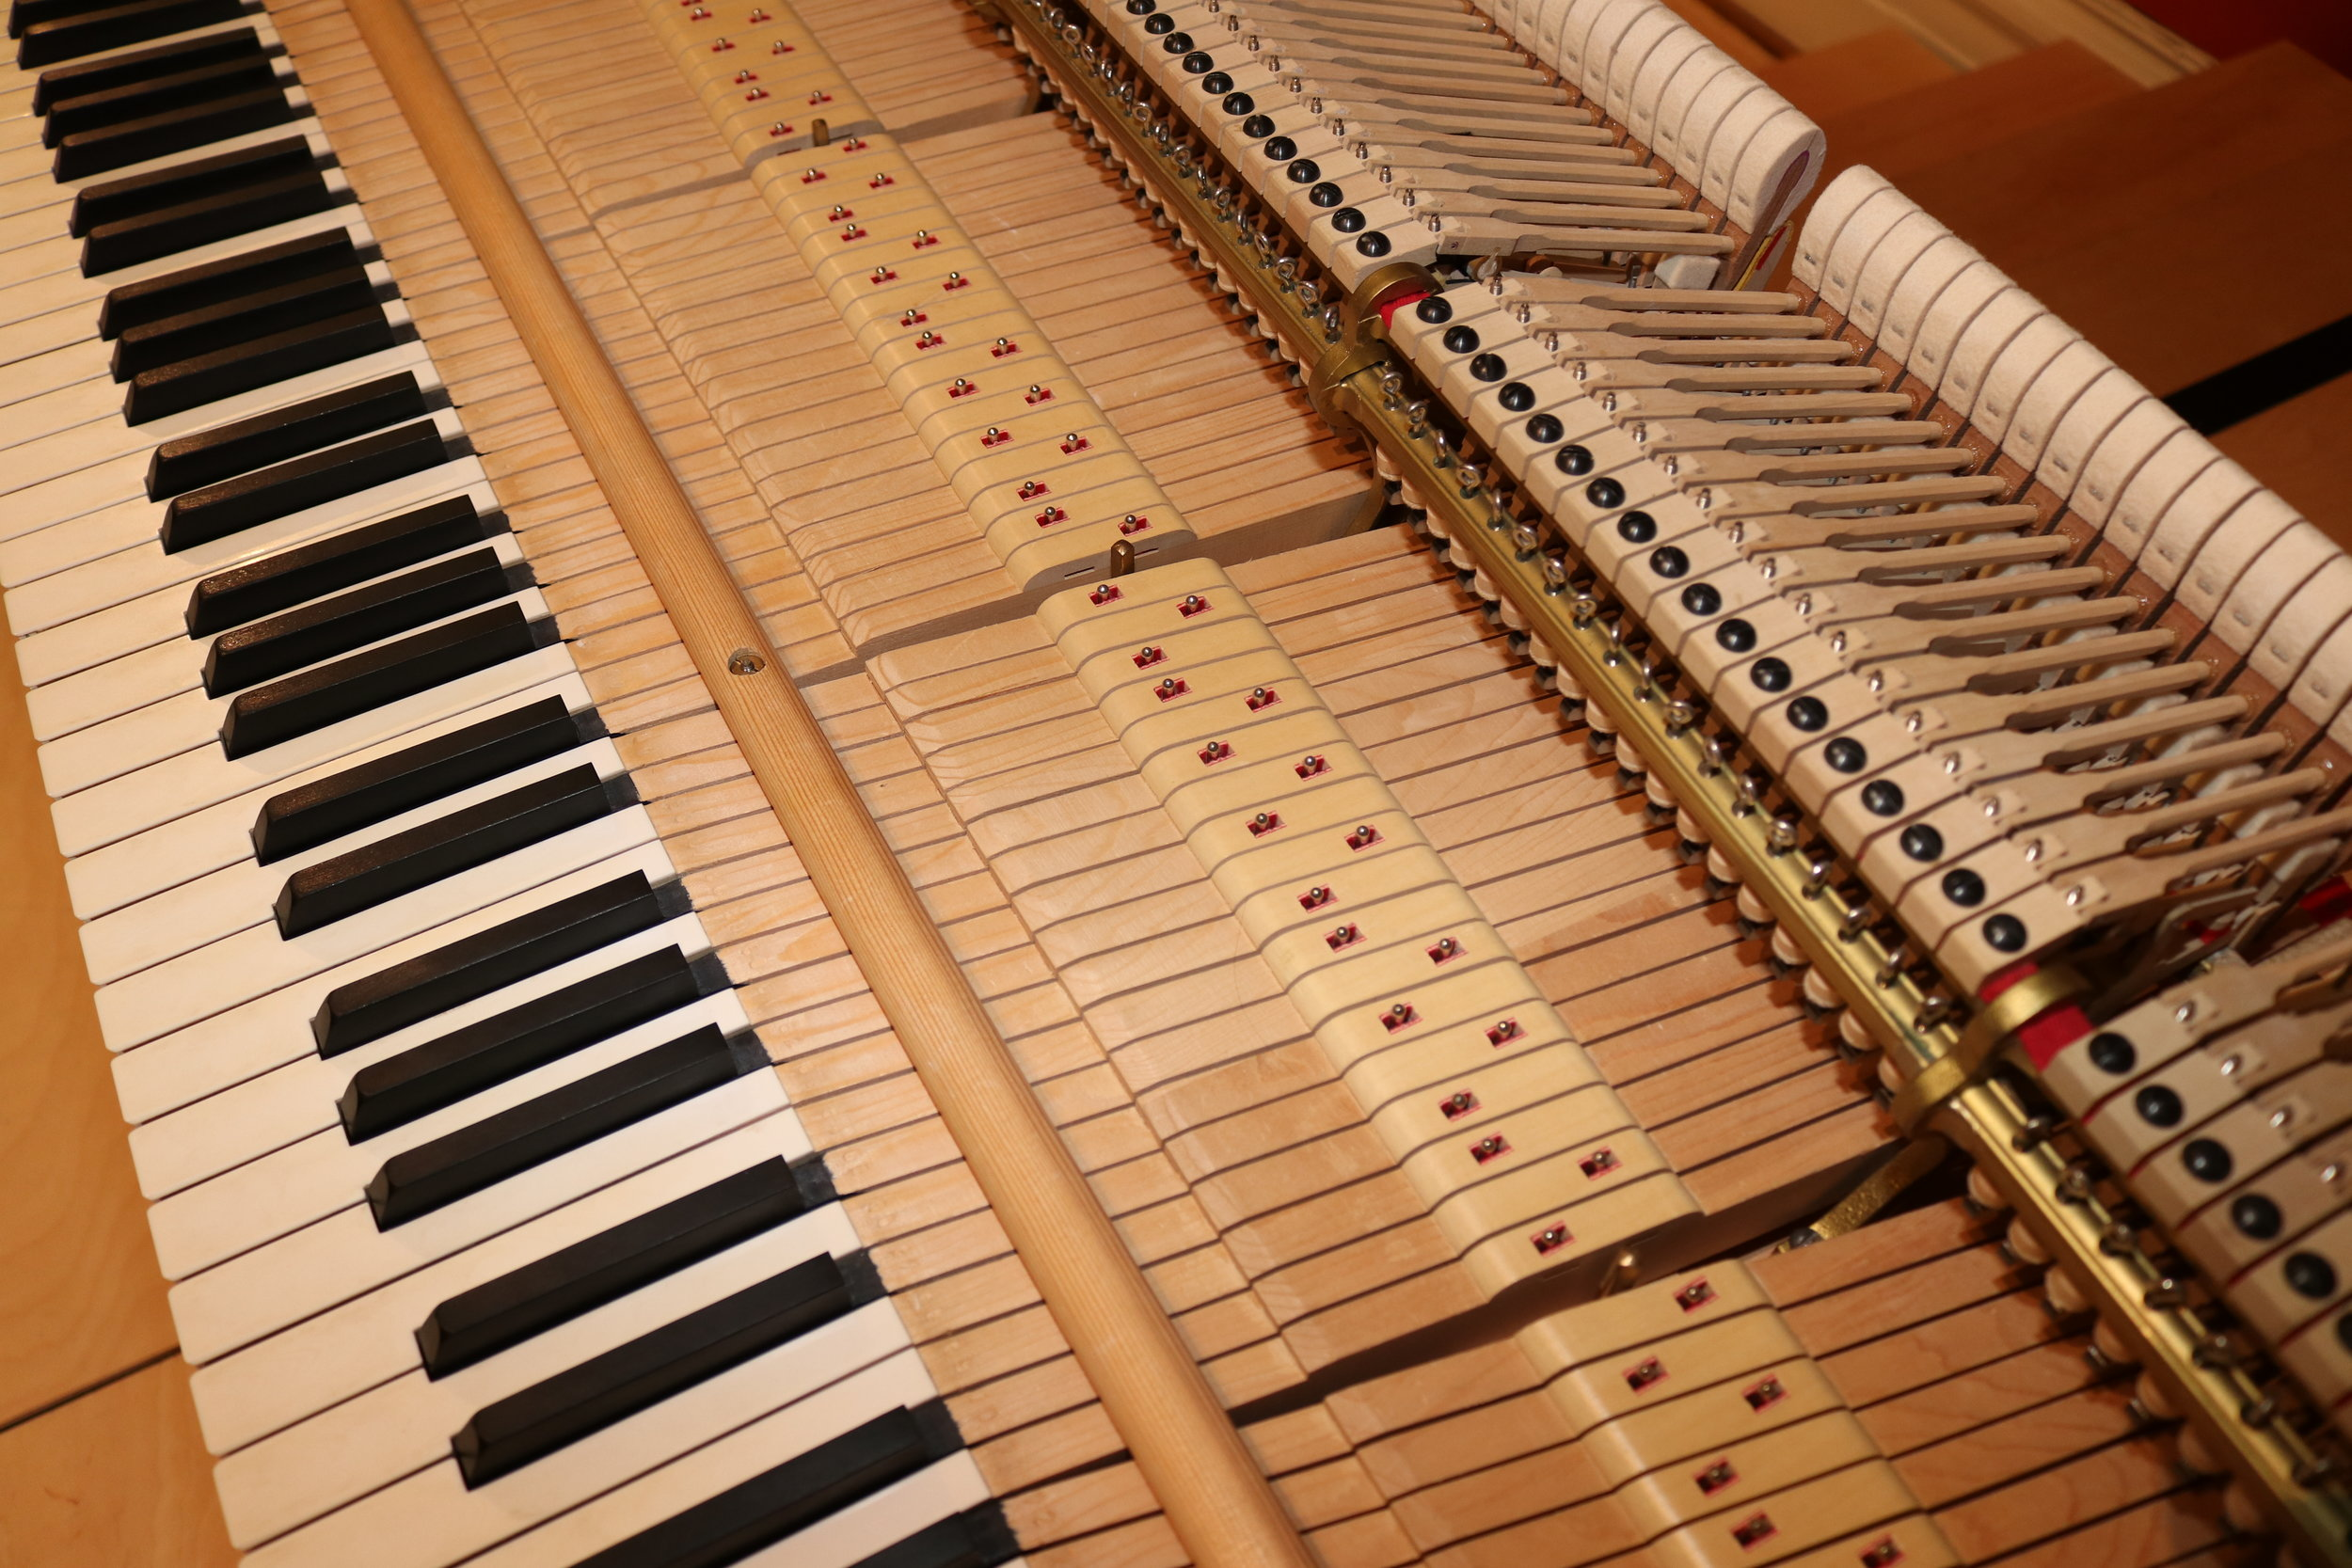 DAY ONE: Keyboard taken out of the instrument.